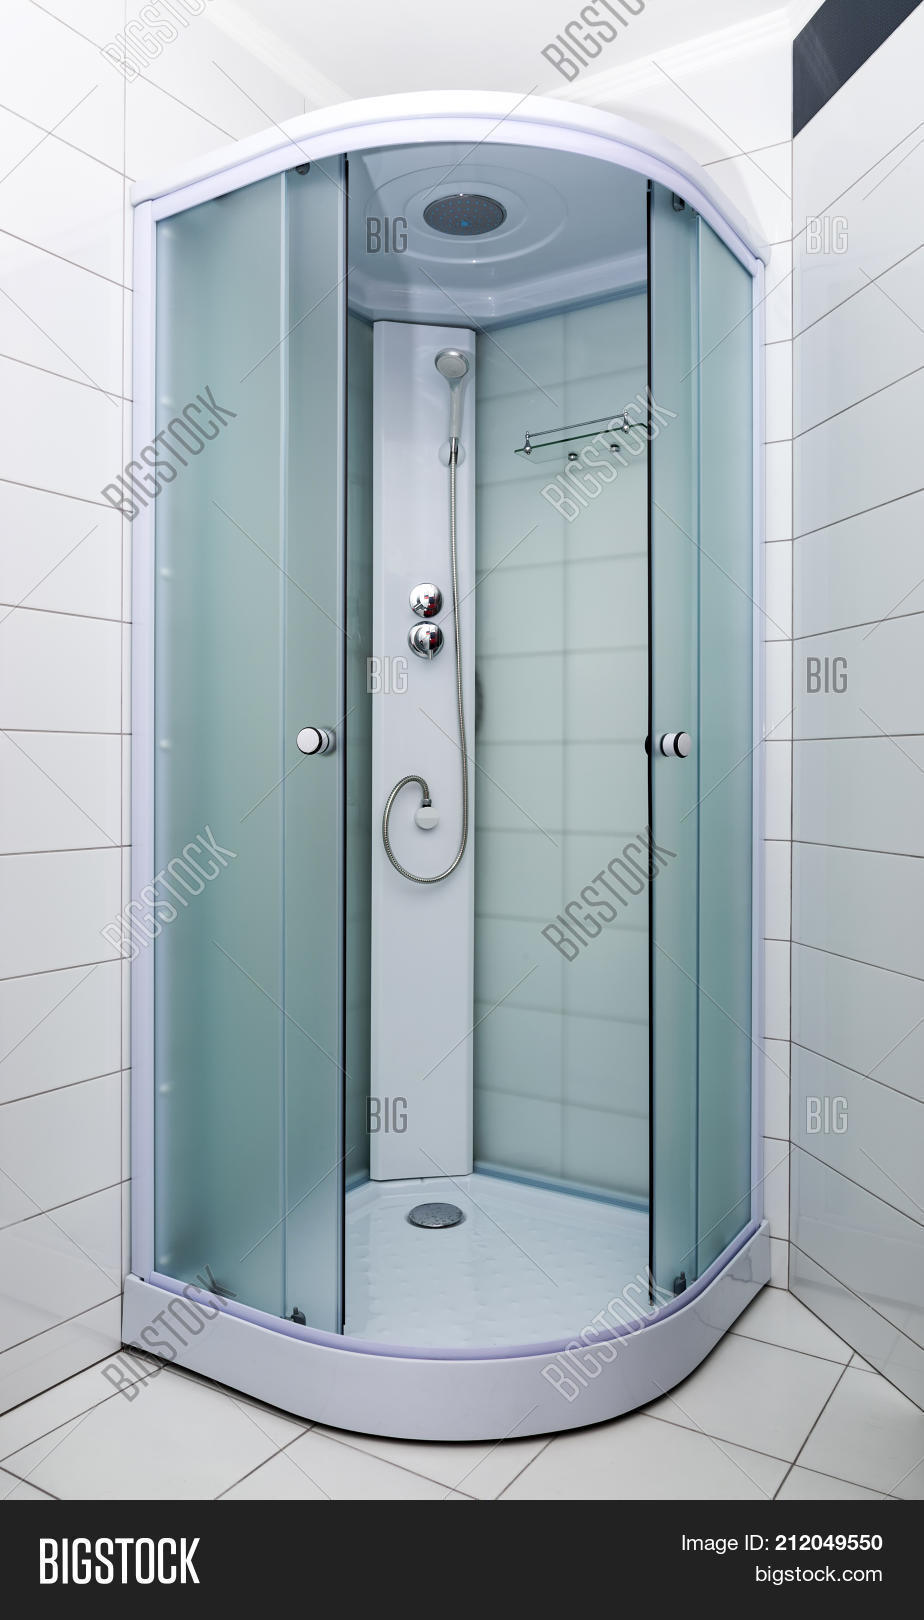 Bathroom Interior New Image & Photo (Free Trial) | Bigstock